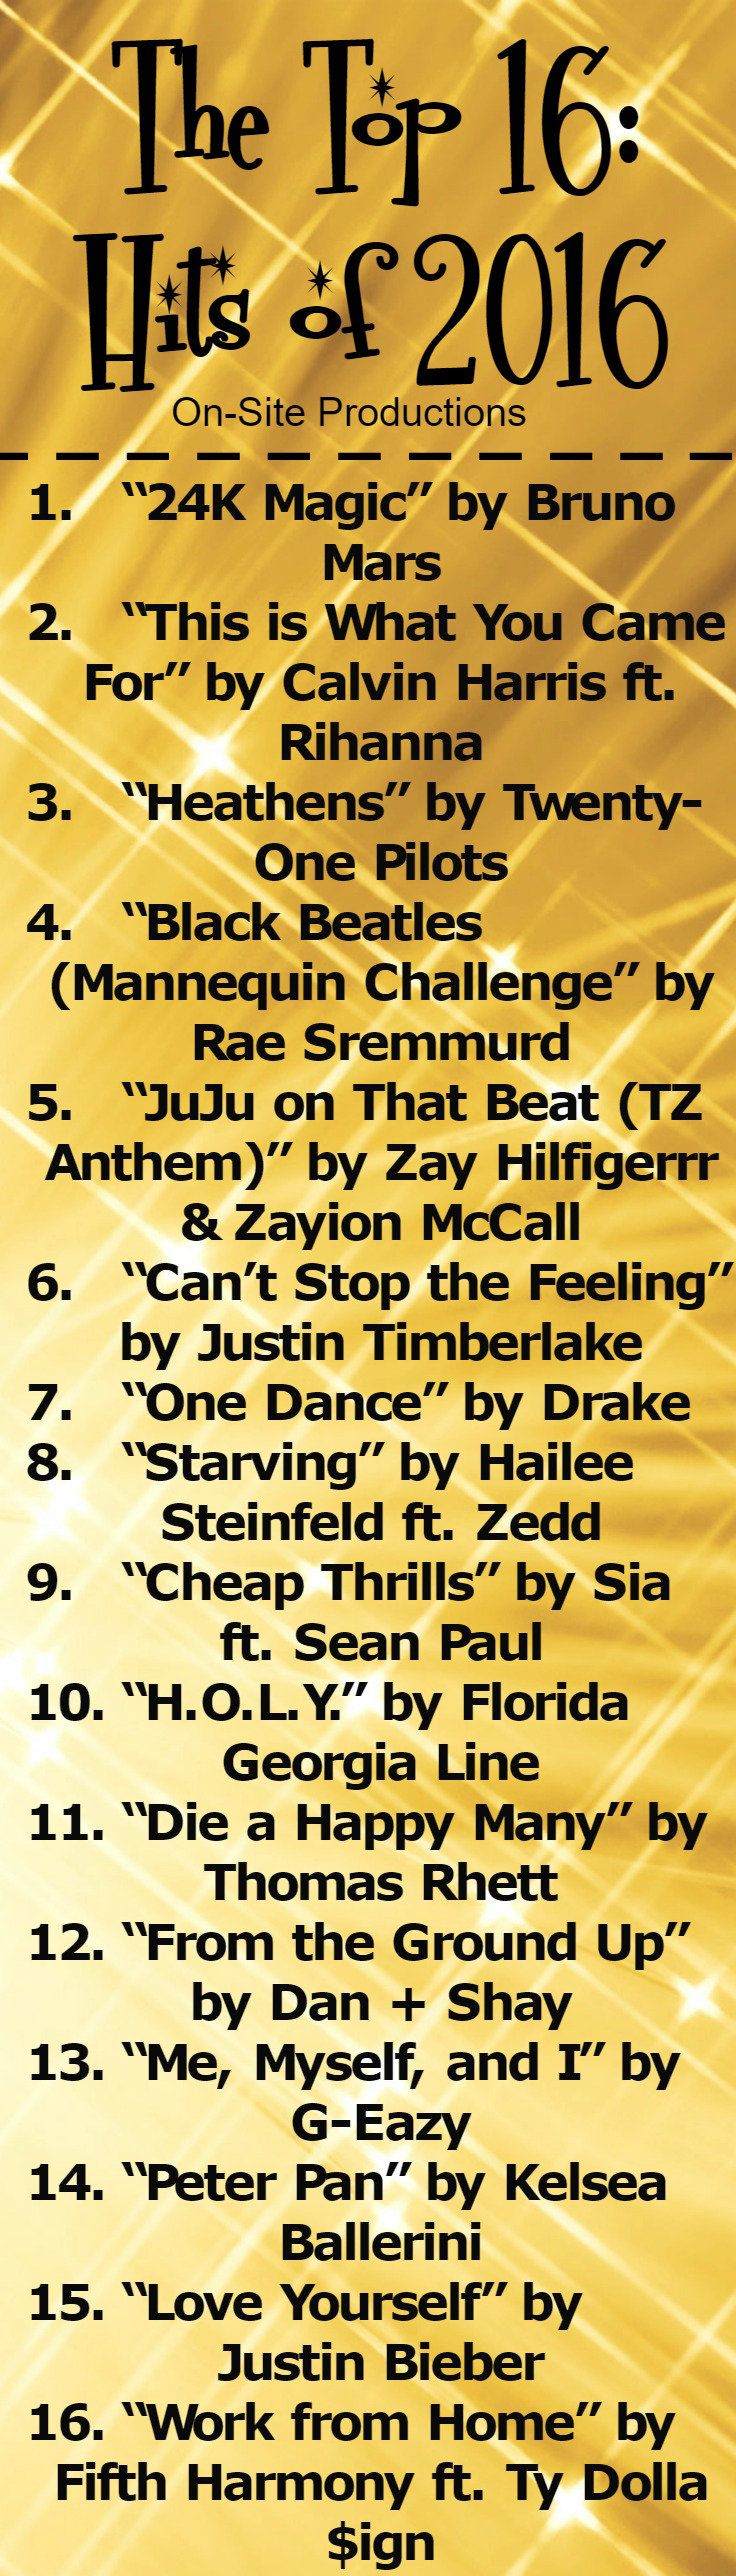 Music in 2016 sure didn't disappoint!From the Mannequin Challenge, hit dance songs, and the most requested first dance song of the year, 2016 brought lots of v